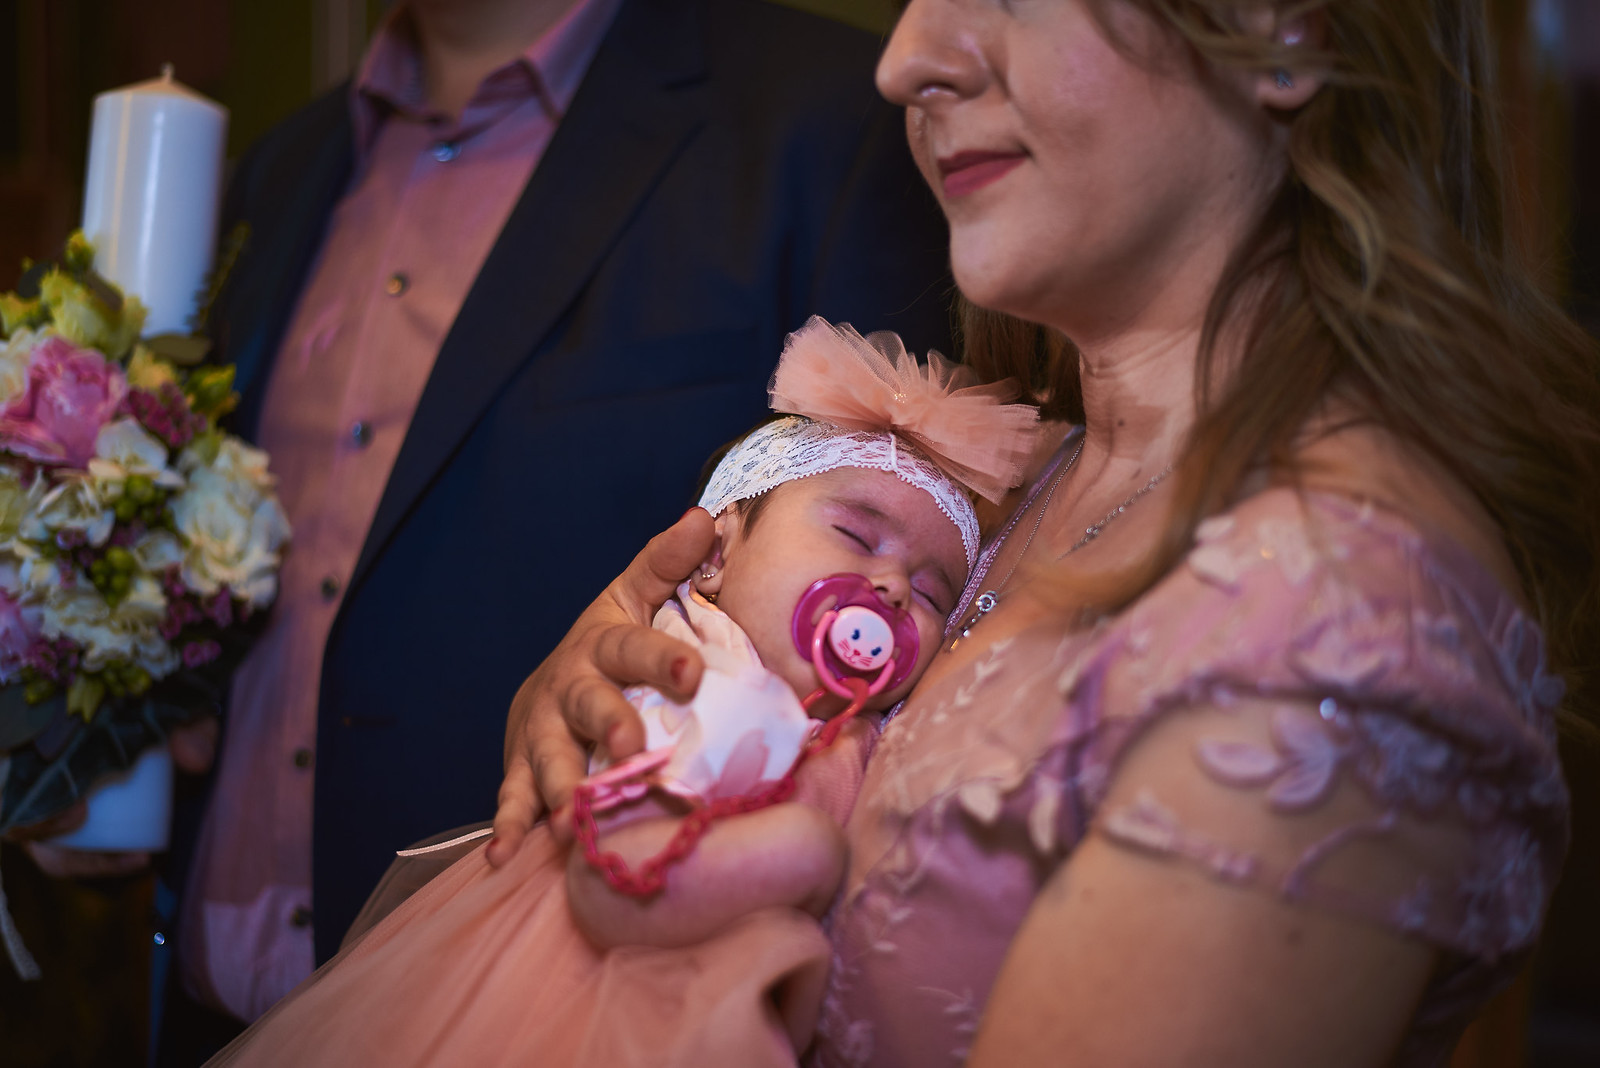 epspictures, endless purple skies, fine art photography, photoshoot, sessions, photos, candid, emotional, artistic, documentary, pictures, photos, newborn, baby, christening, baptism, romania, bucharest, bucuresti, botez, fotografie, eveniment